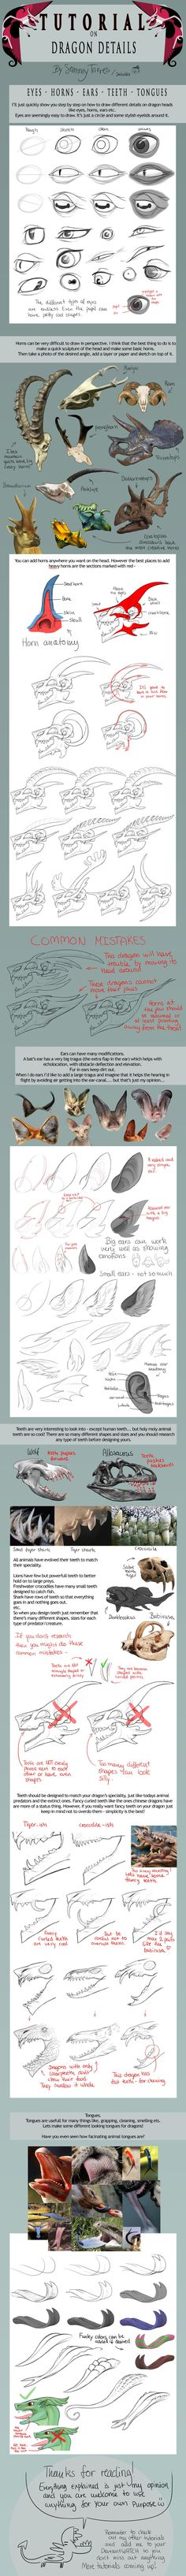 TUTORIAL: Dragon Details by SammyTorres.deviantart.com on @deviantART